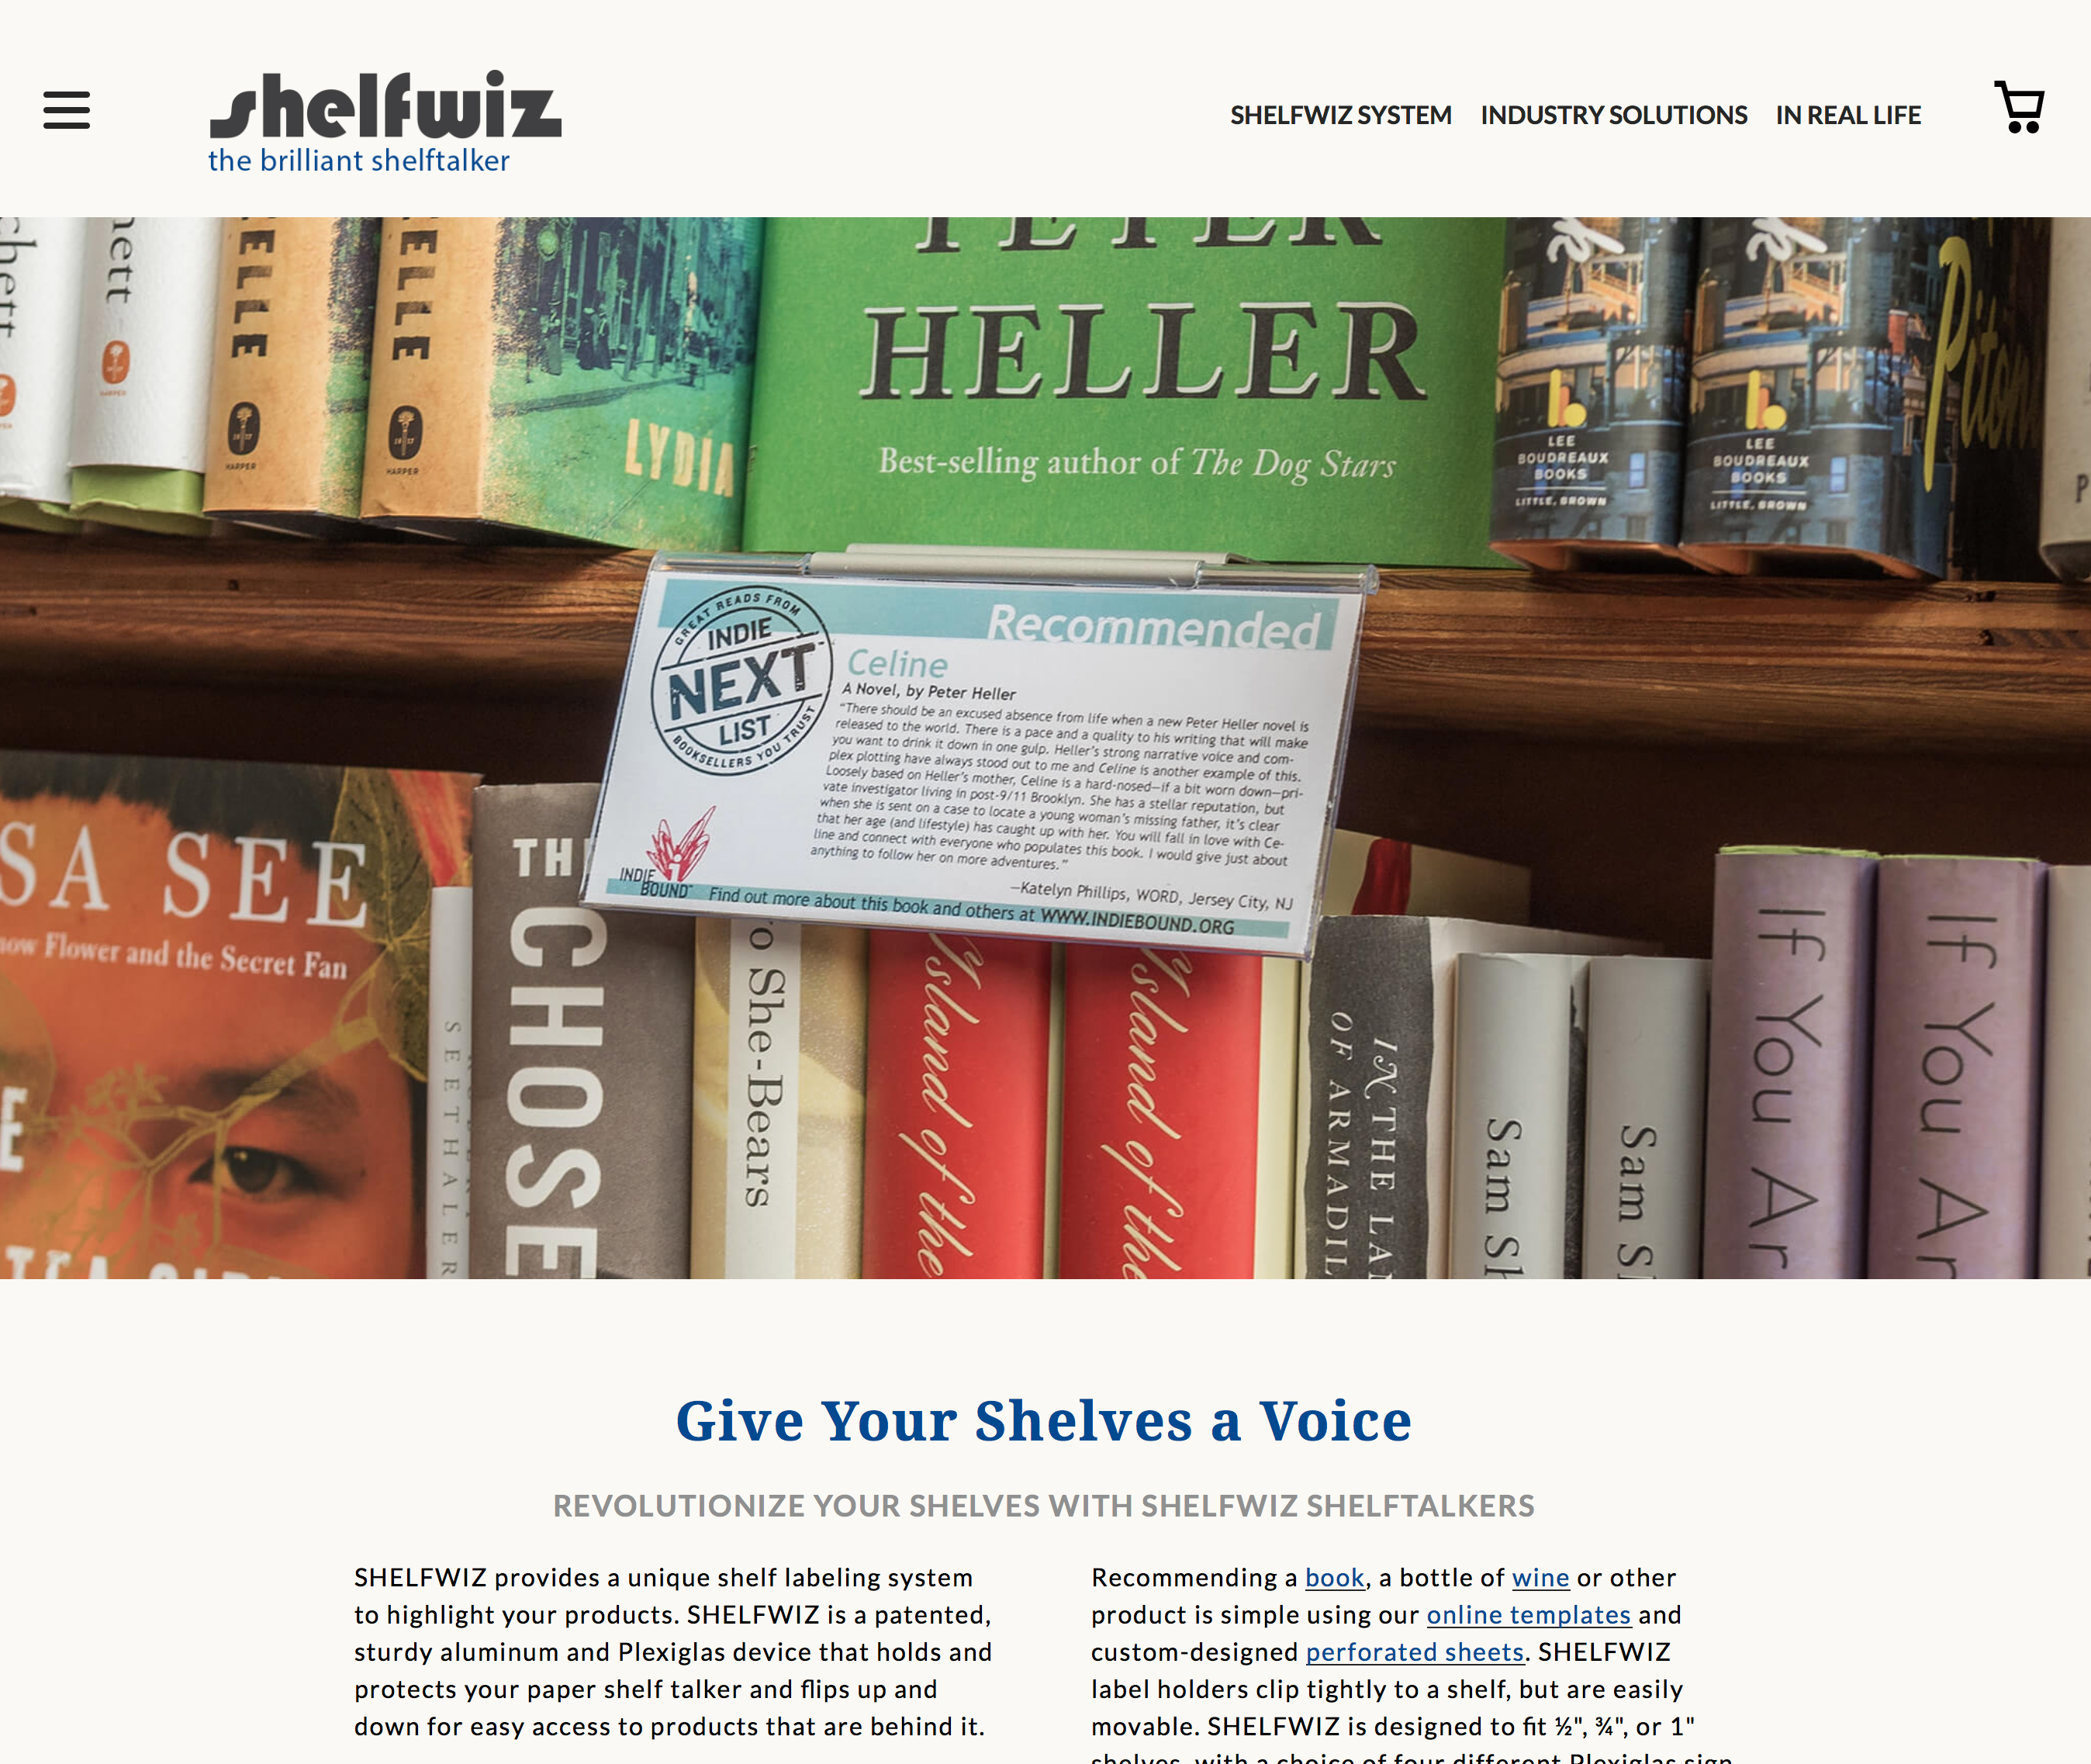 Revolutionize Your Shelves With Shelfwiz Shelftalkers